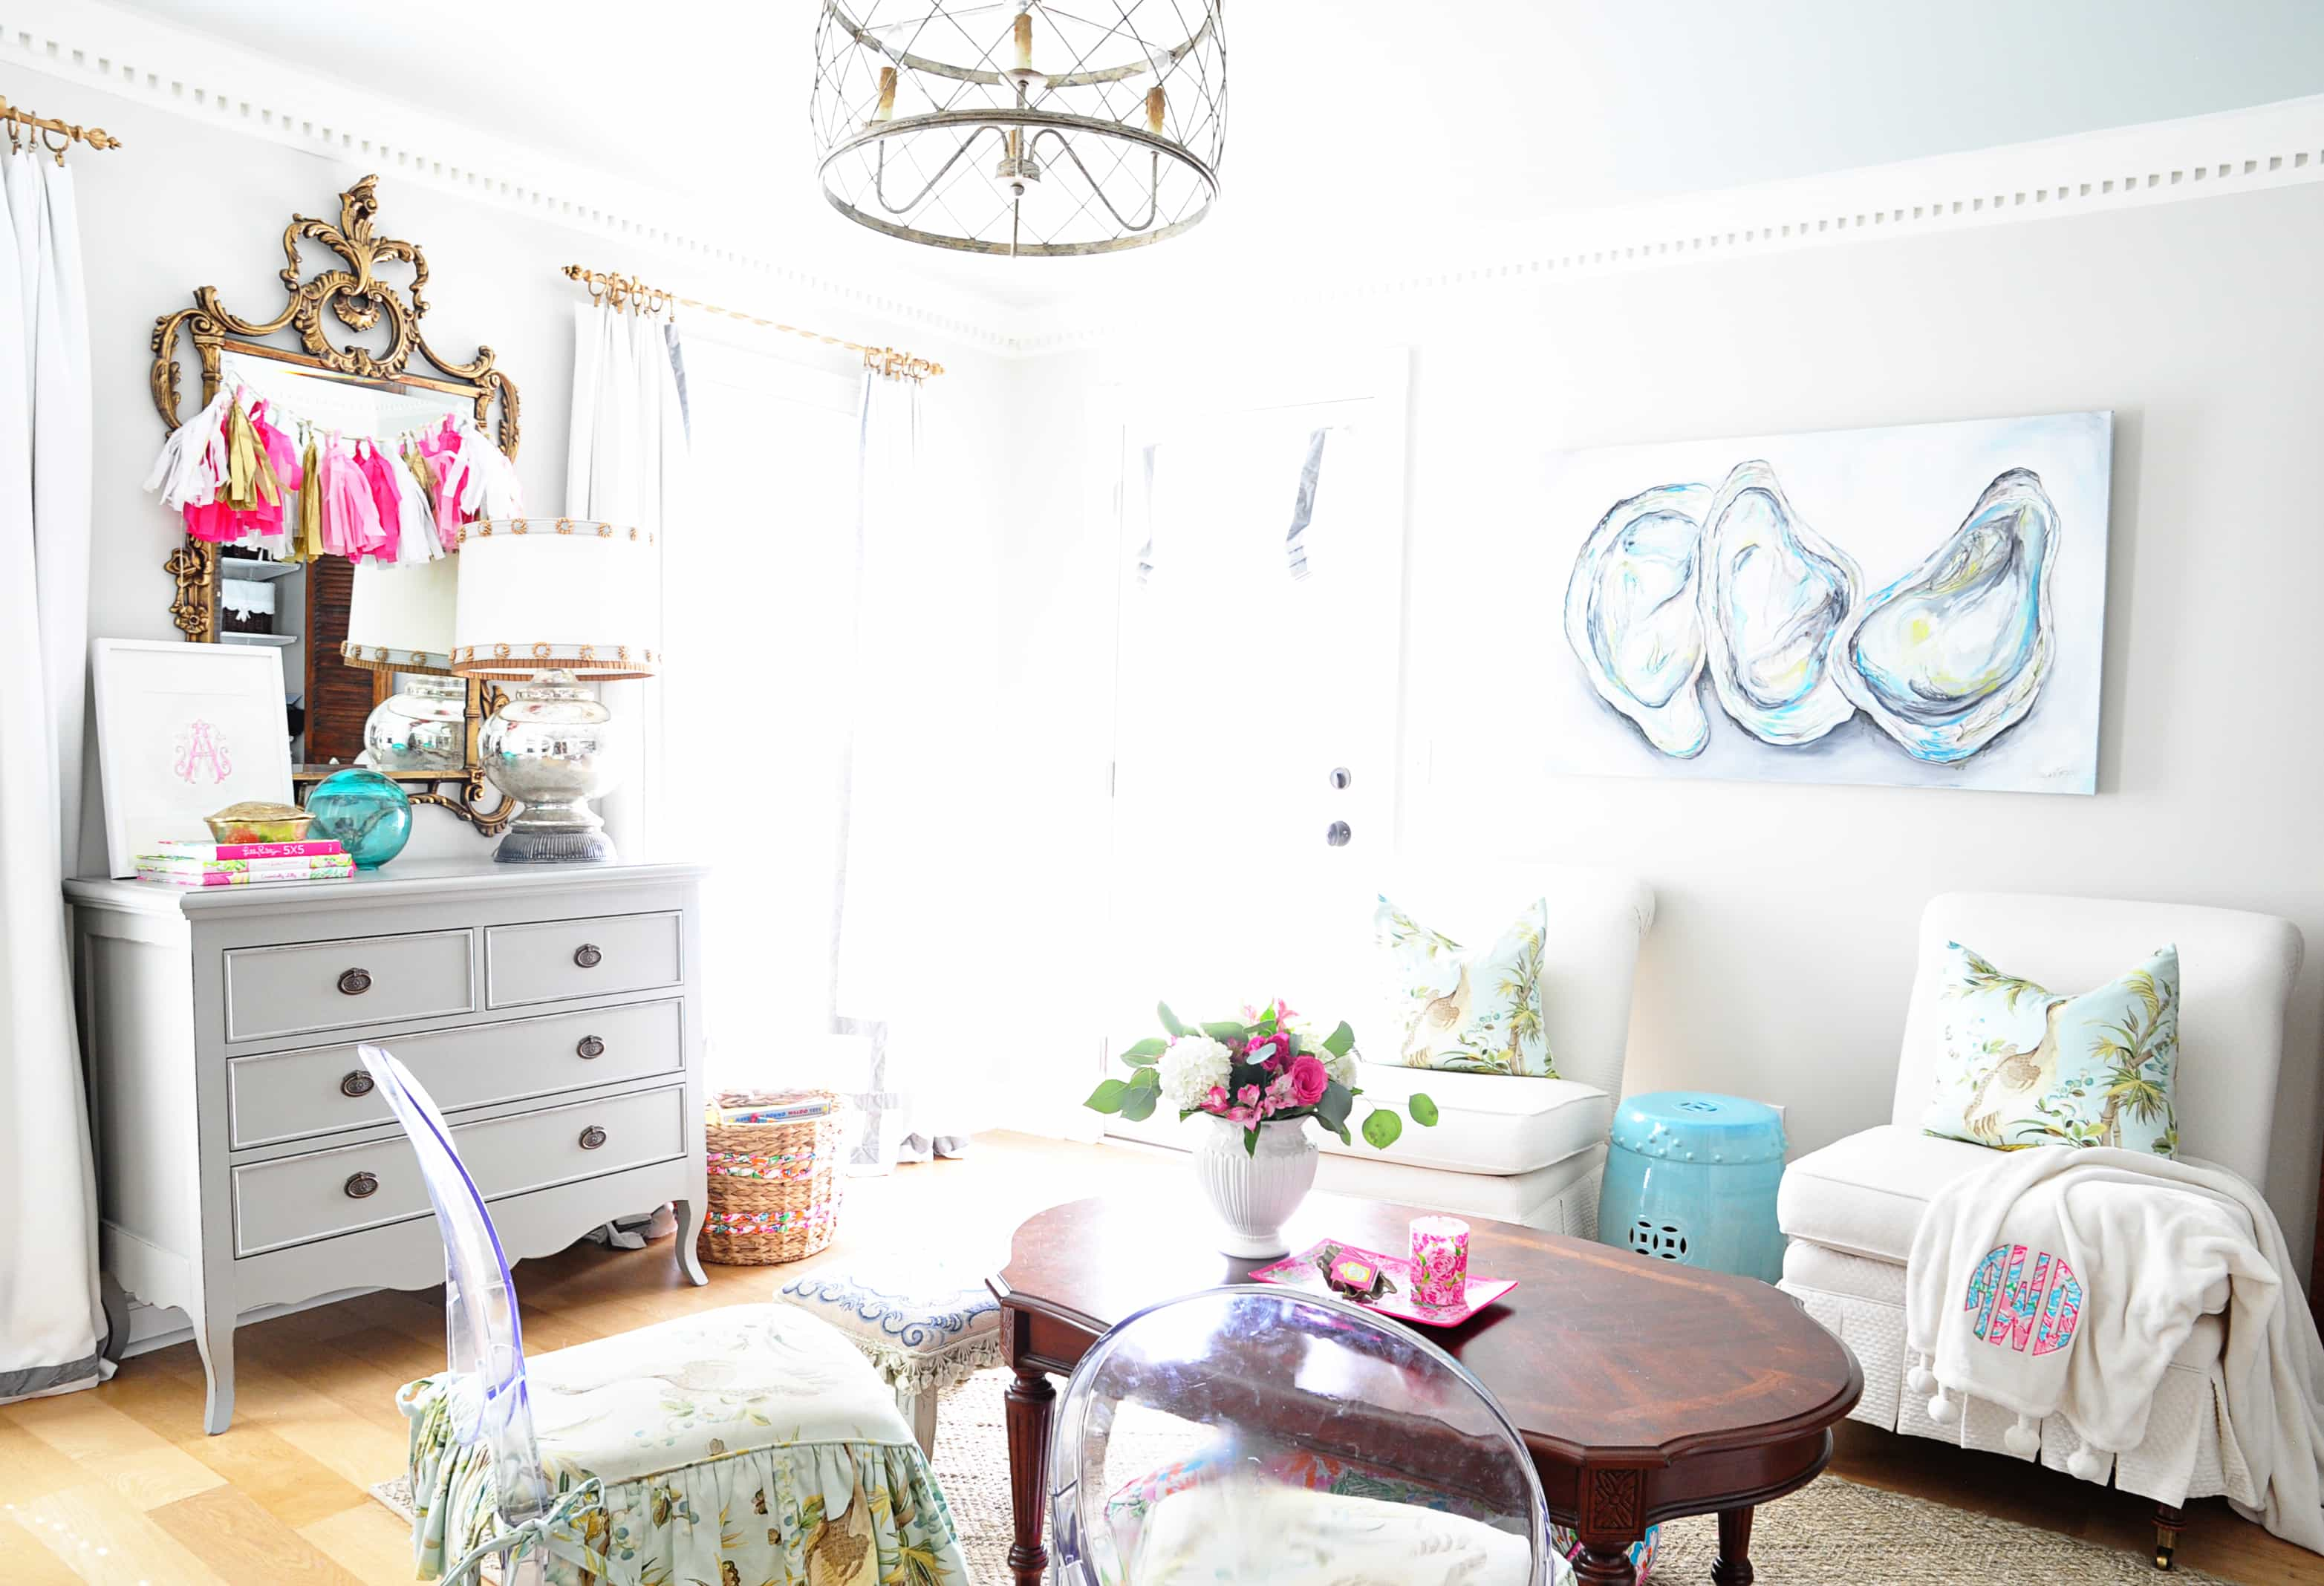 The Delightful Home {Family Office} – Dixie Delights